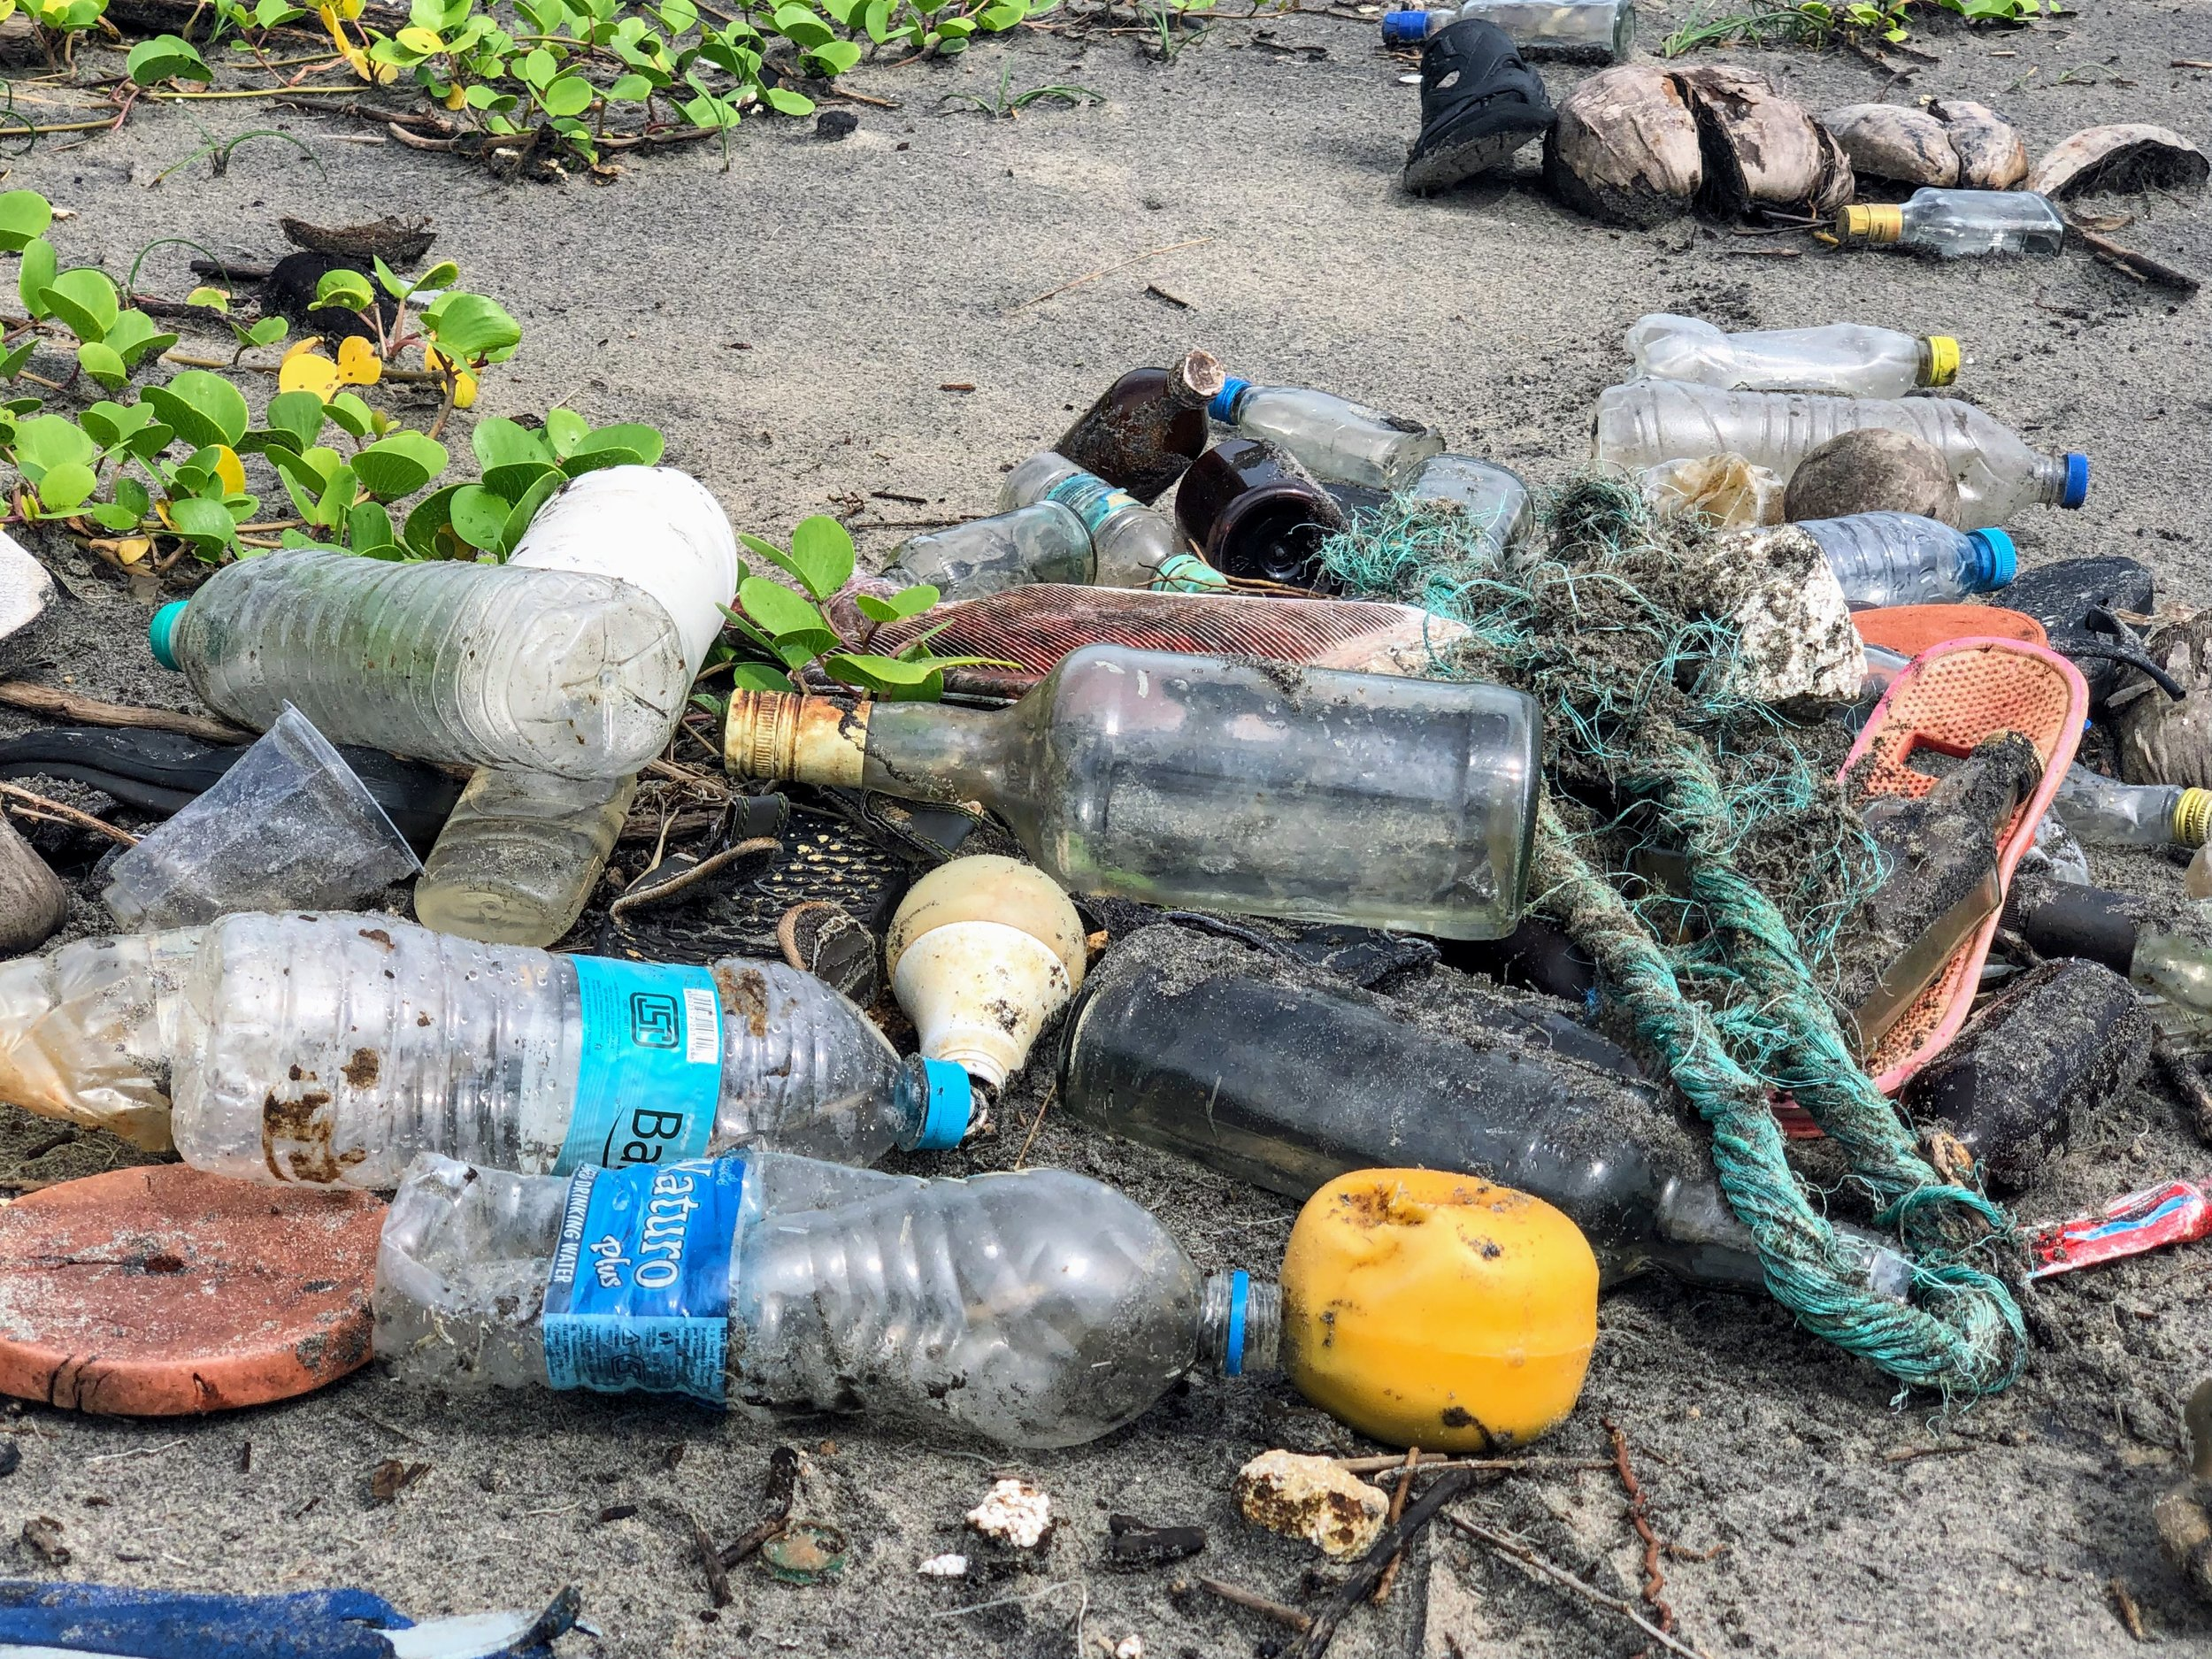 Plastic is without a doubt our most permanent impact on the world around us. The transition to bioplastics might not remove already existing plastics, but it would slow the rate of pollution, which is a start. Photo credit: John Cameron